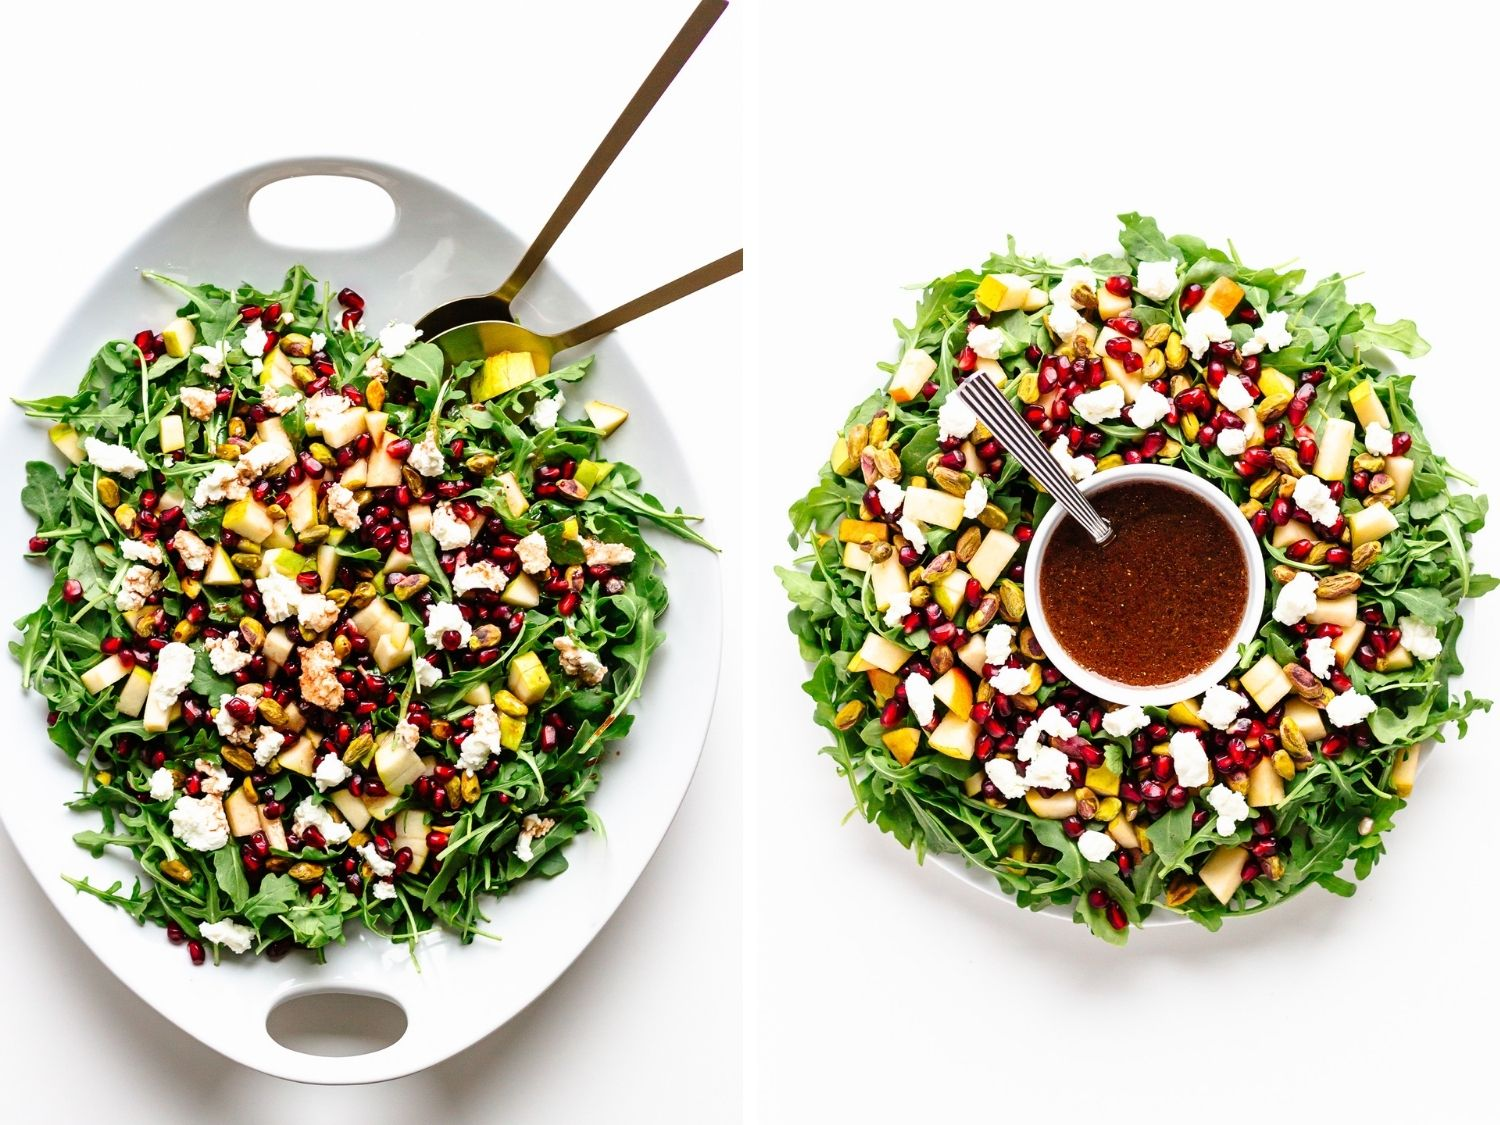 Collage showing two ways to present a Winter Holiday Salad (on a platter and in a wreath shape).